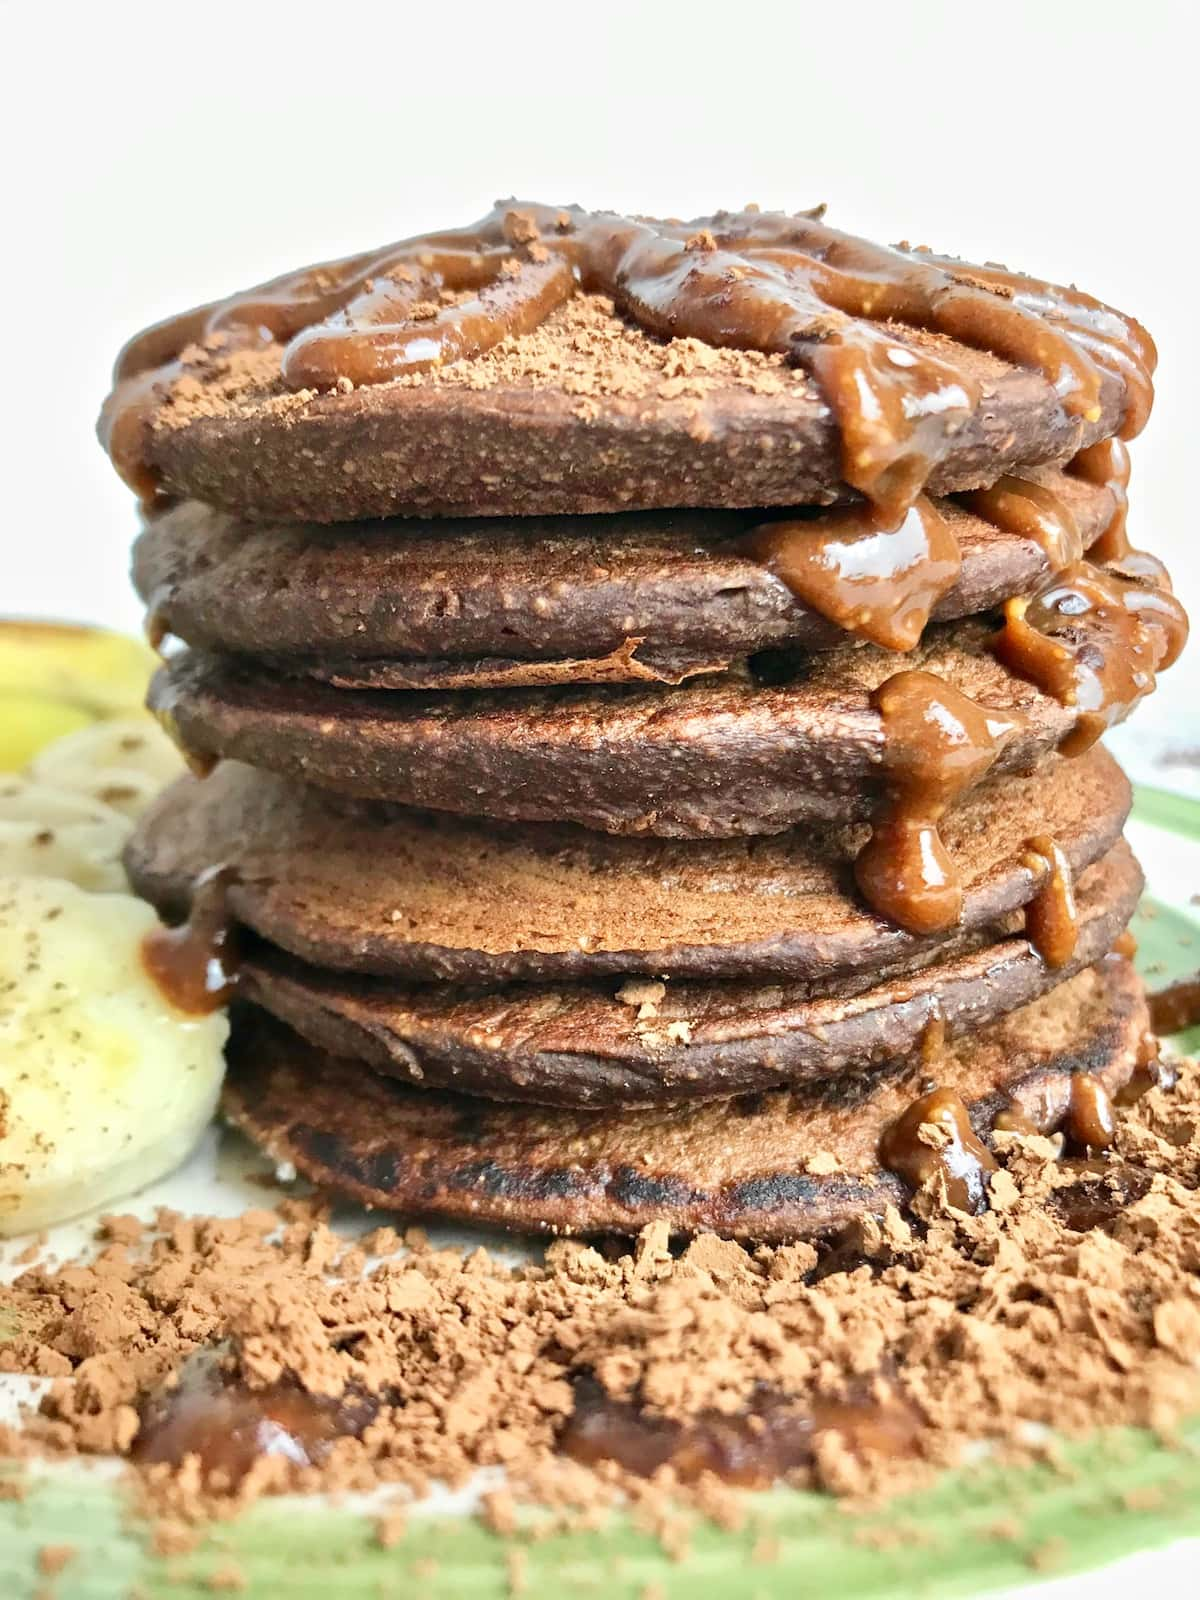 Stack of chocolate pancakes with chocolate syrup and cacao powder on top.